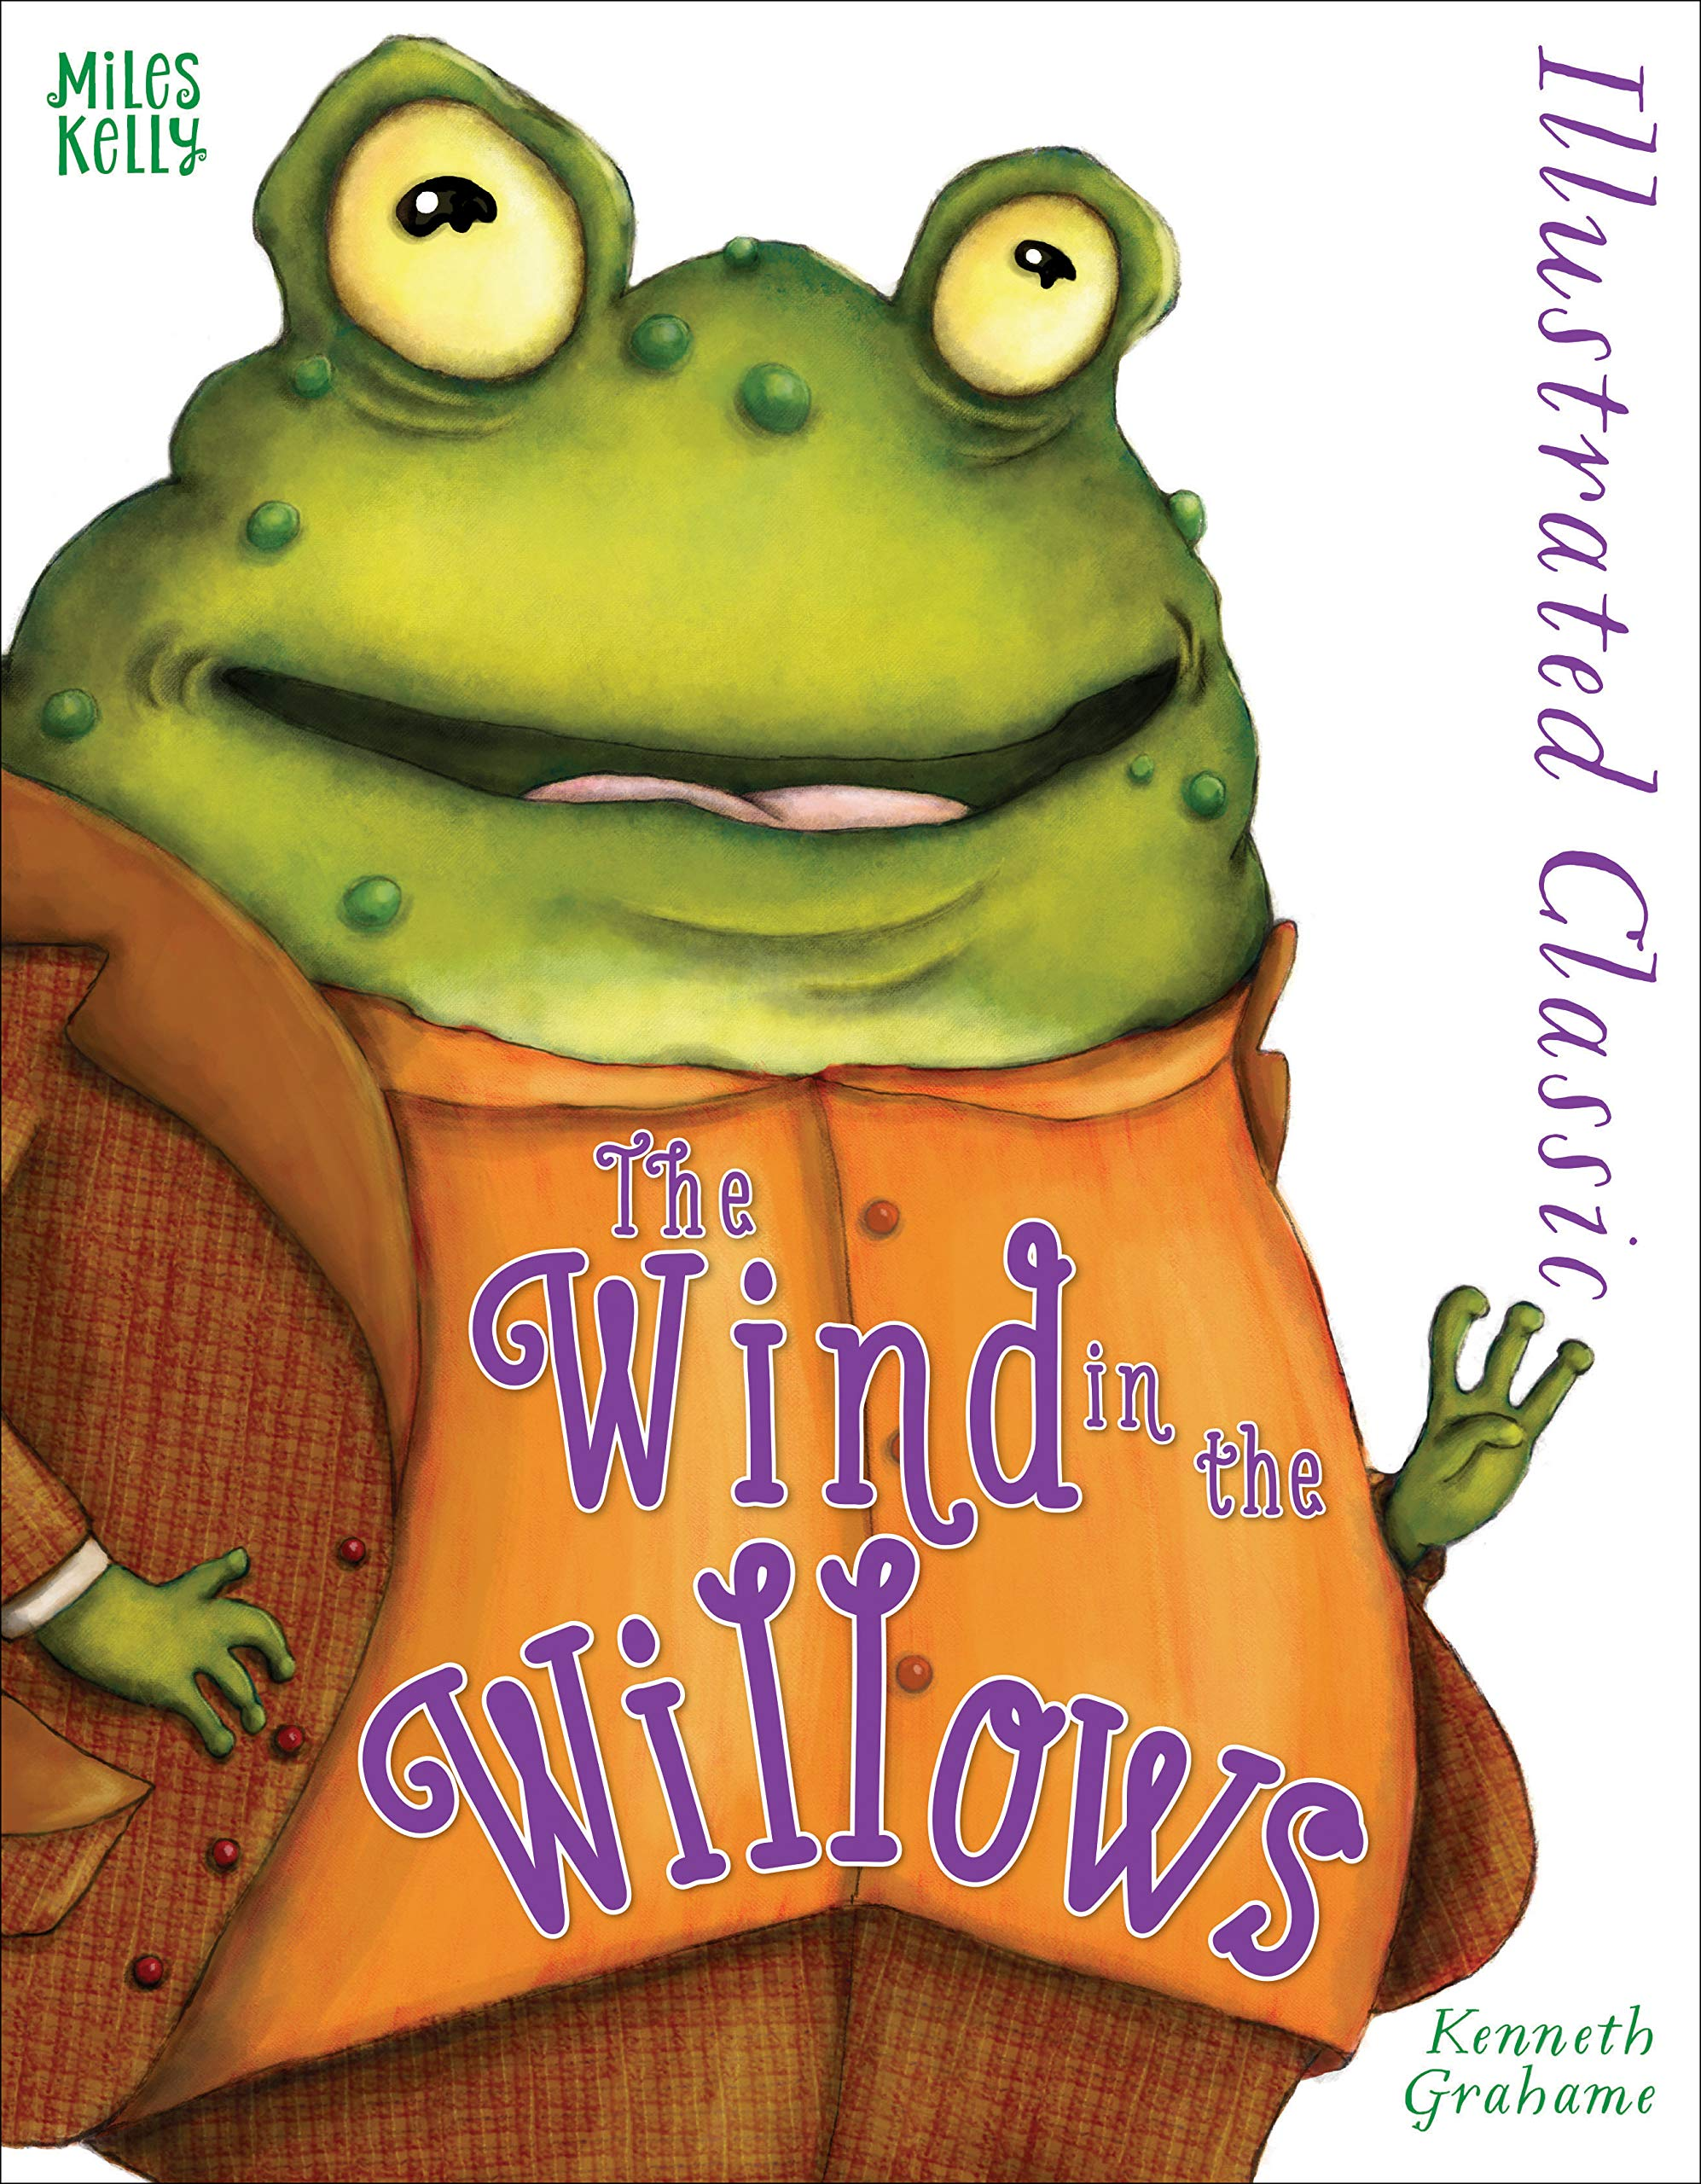 D160 ILL. CLASSIC WILLOWS (ILLUSTRATED CLASSIC)